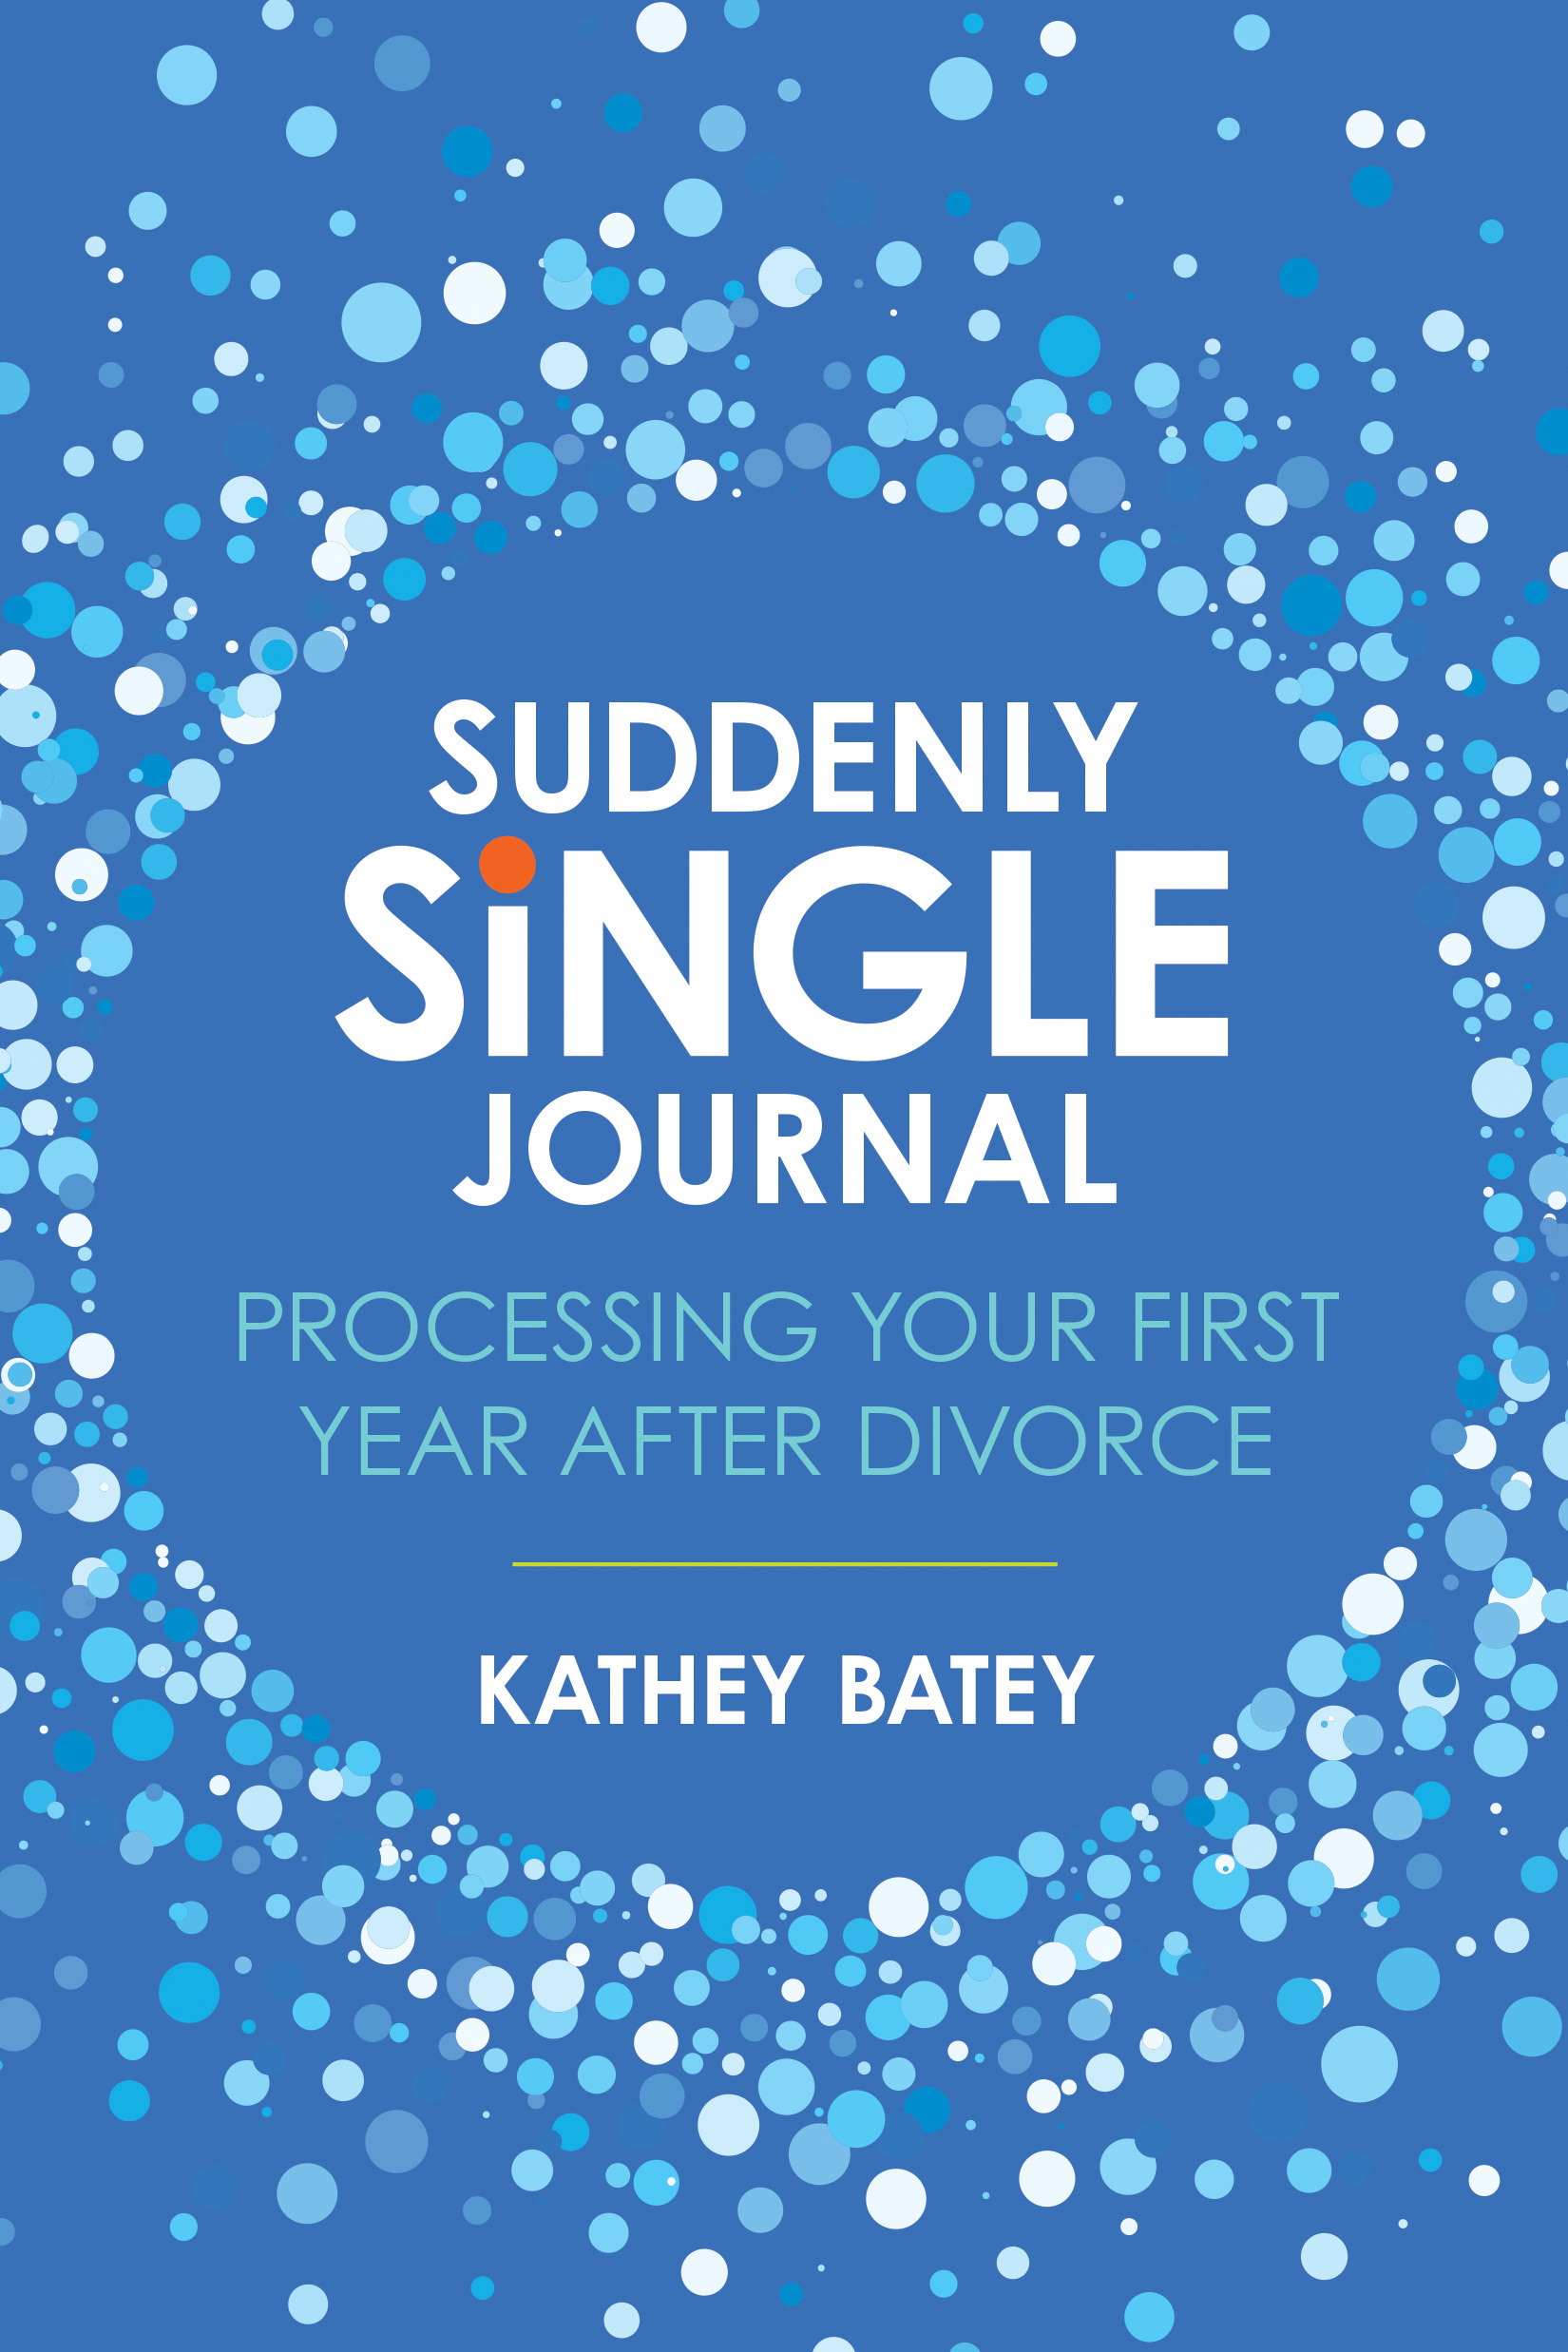 Suddenly Single Journal Processing Your First Year after Divorce